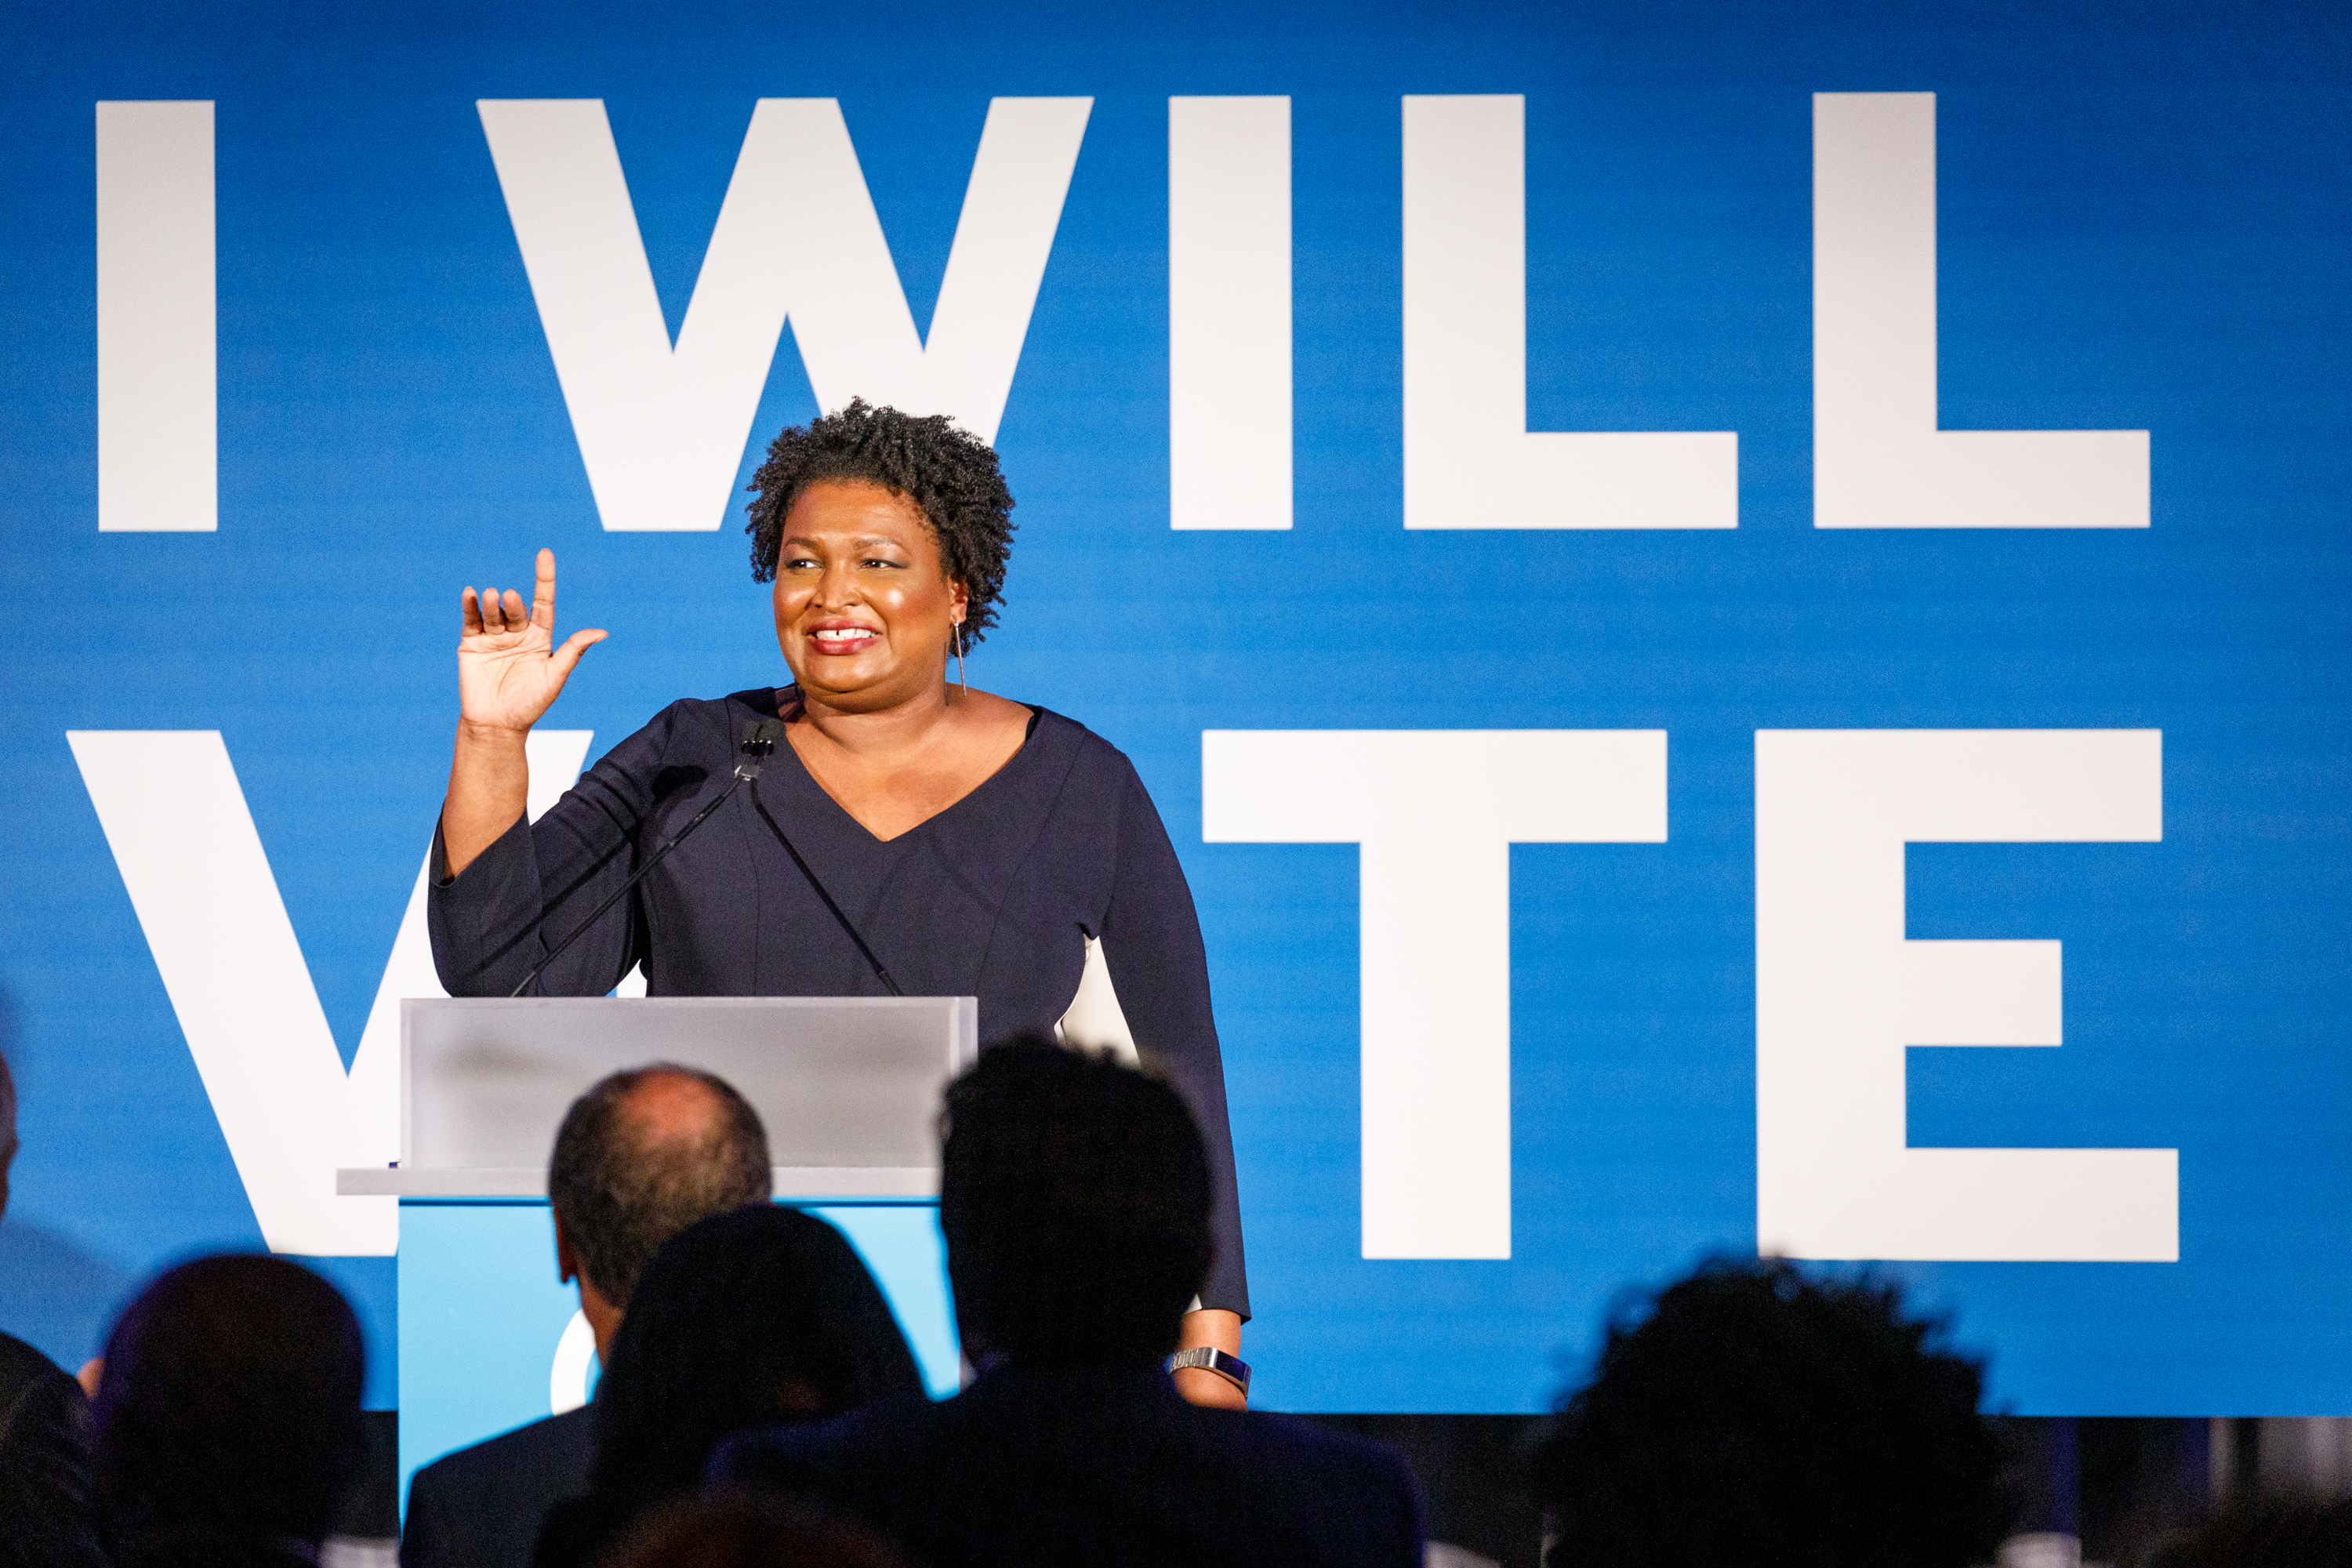 Stacey Abrams is leading the debate on some of the most important political issues in 2019